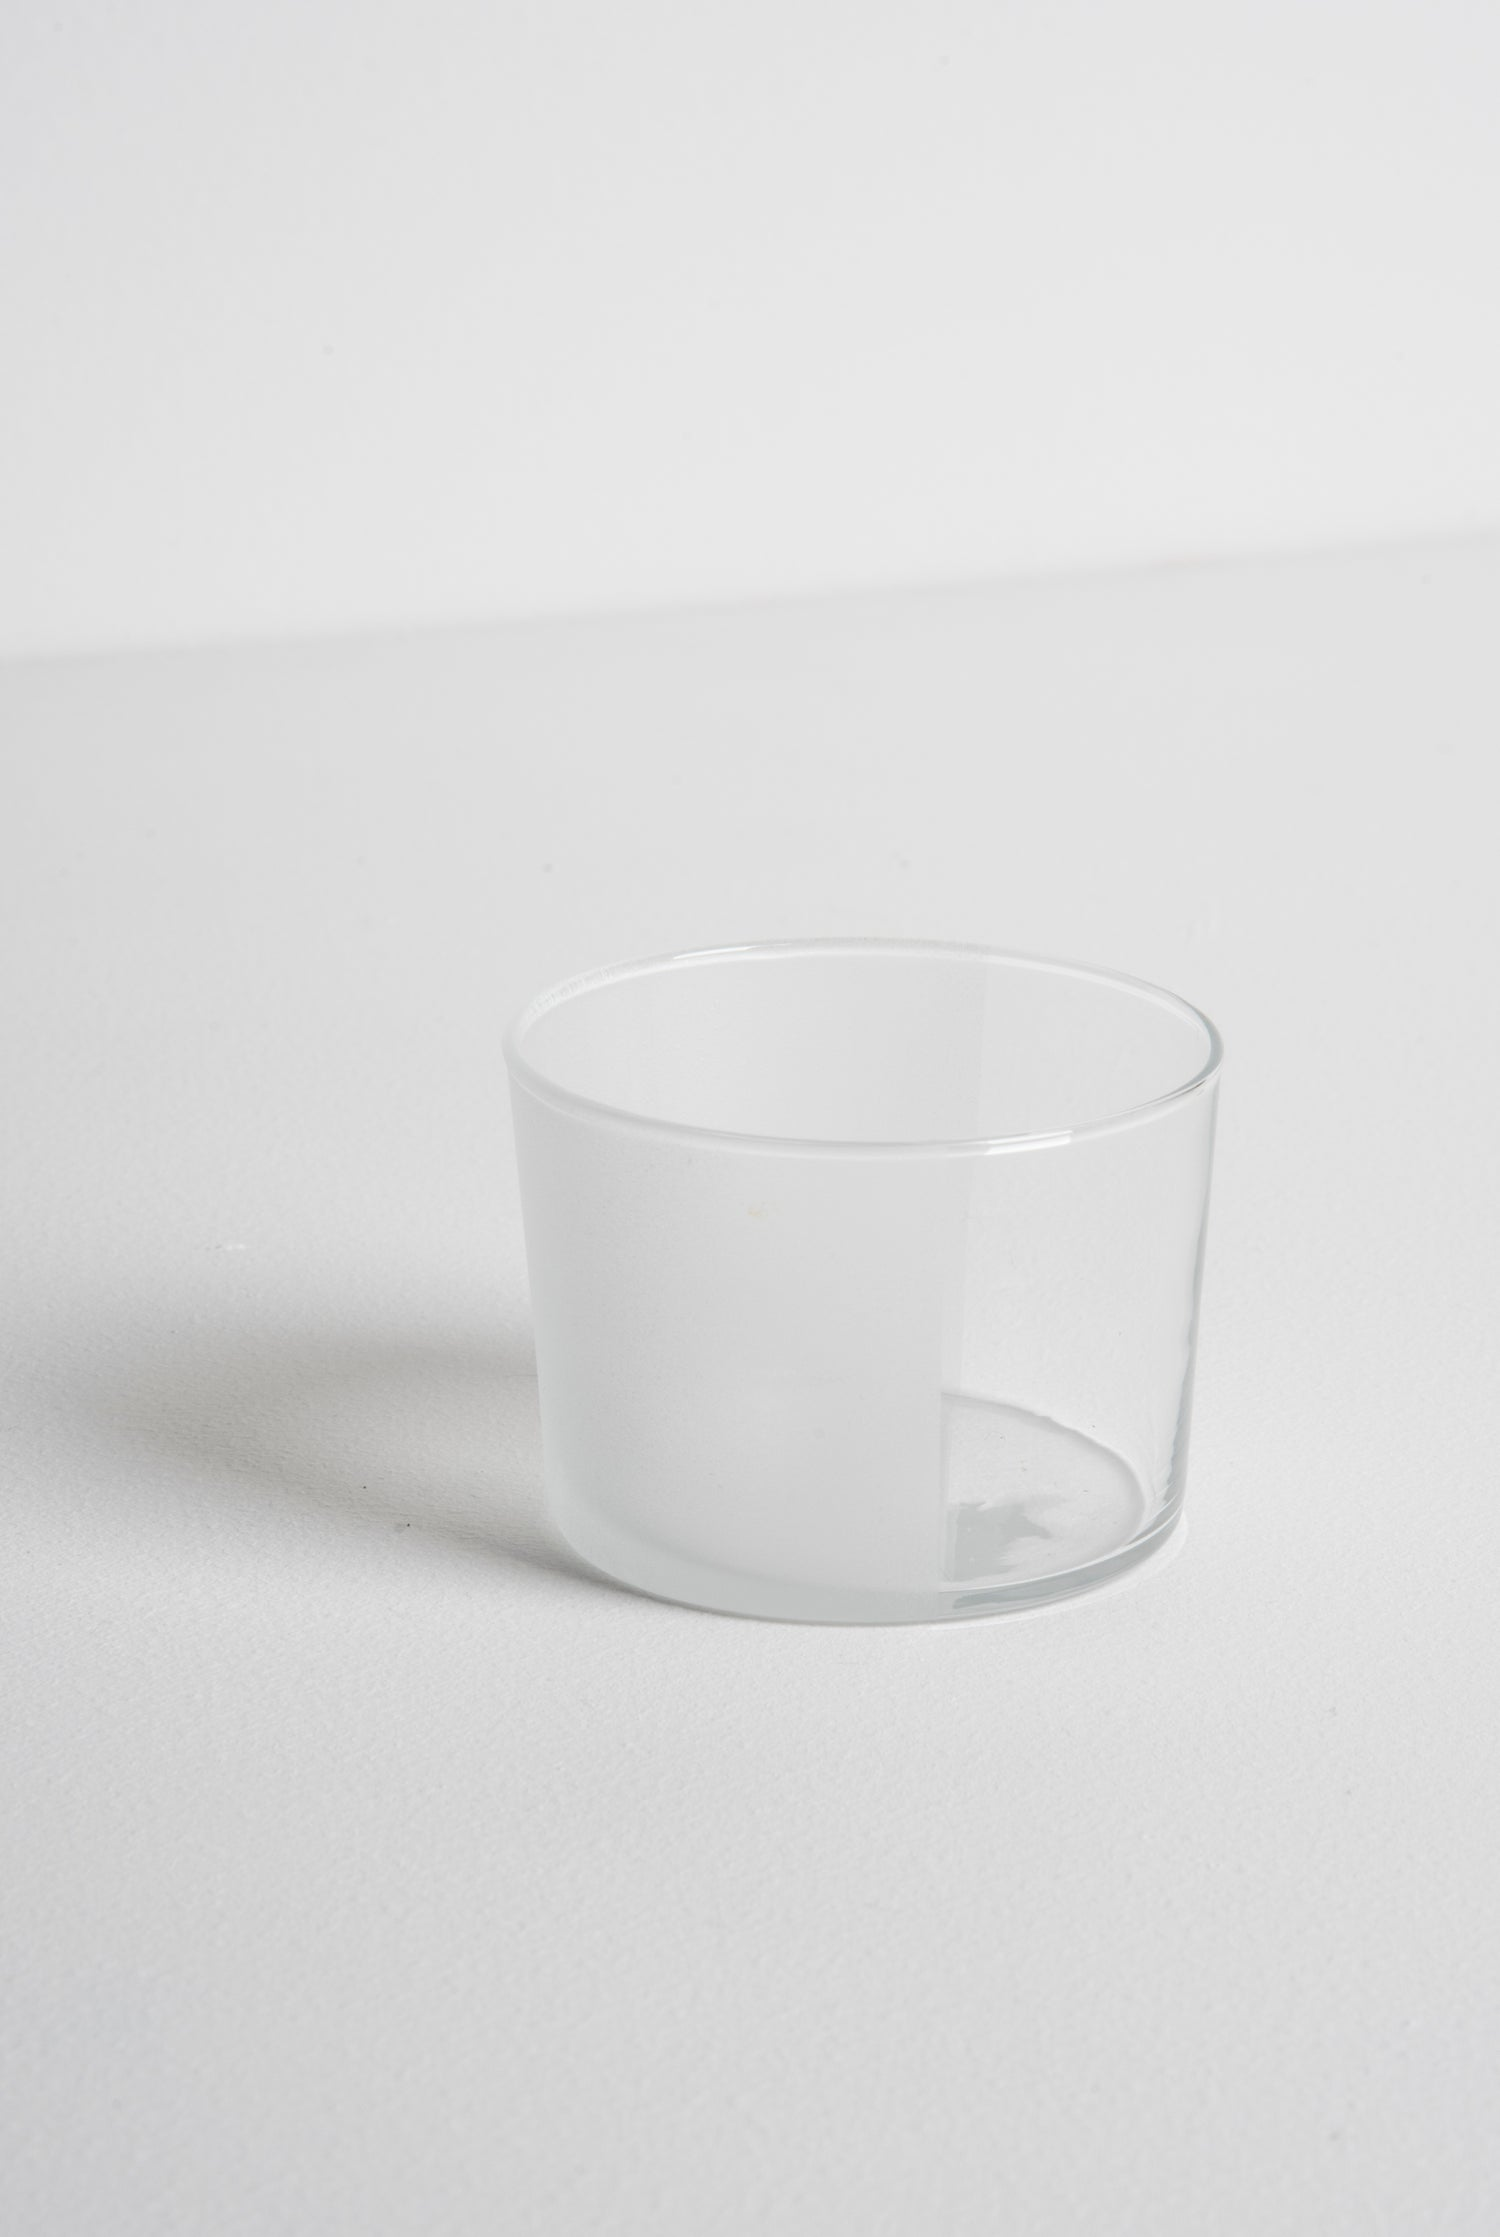 Image of Icy Lowball Glass